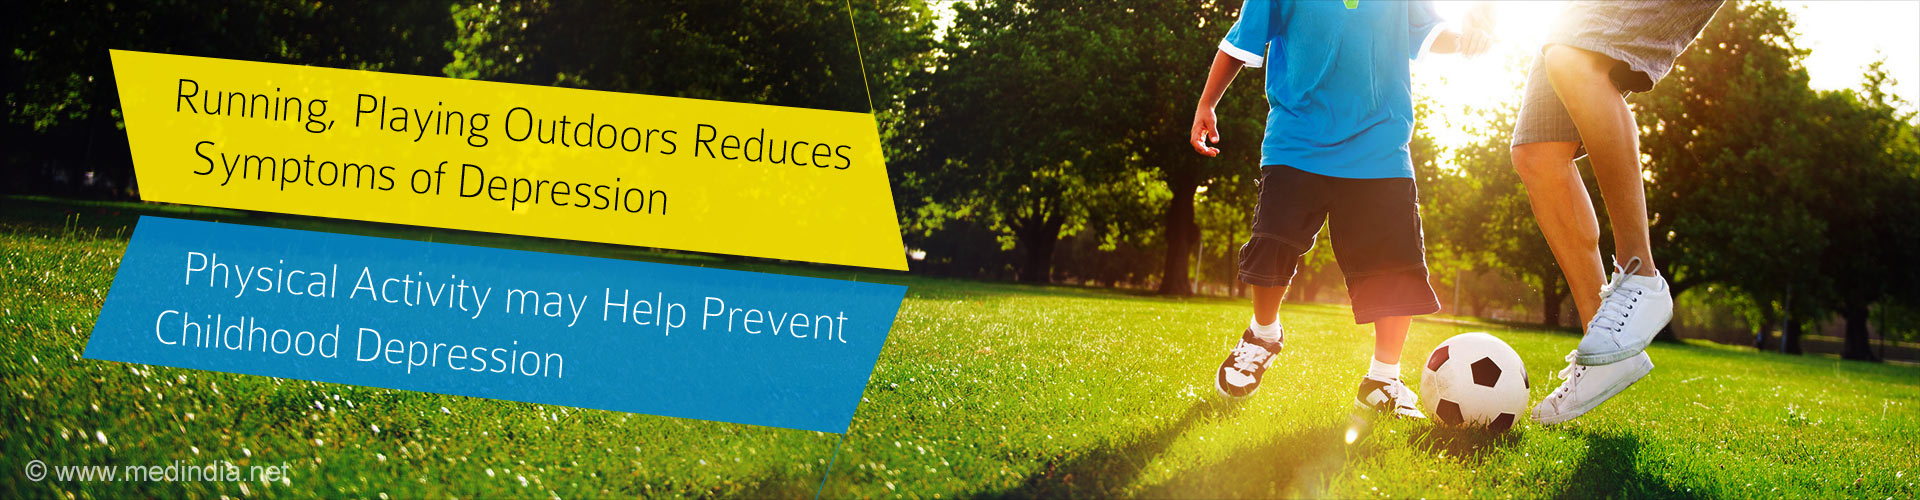 - Running, playing outdoor reduce symptoms of depression - Physical activity may help prevent childhood depression